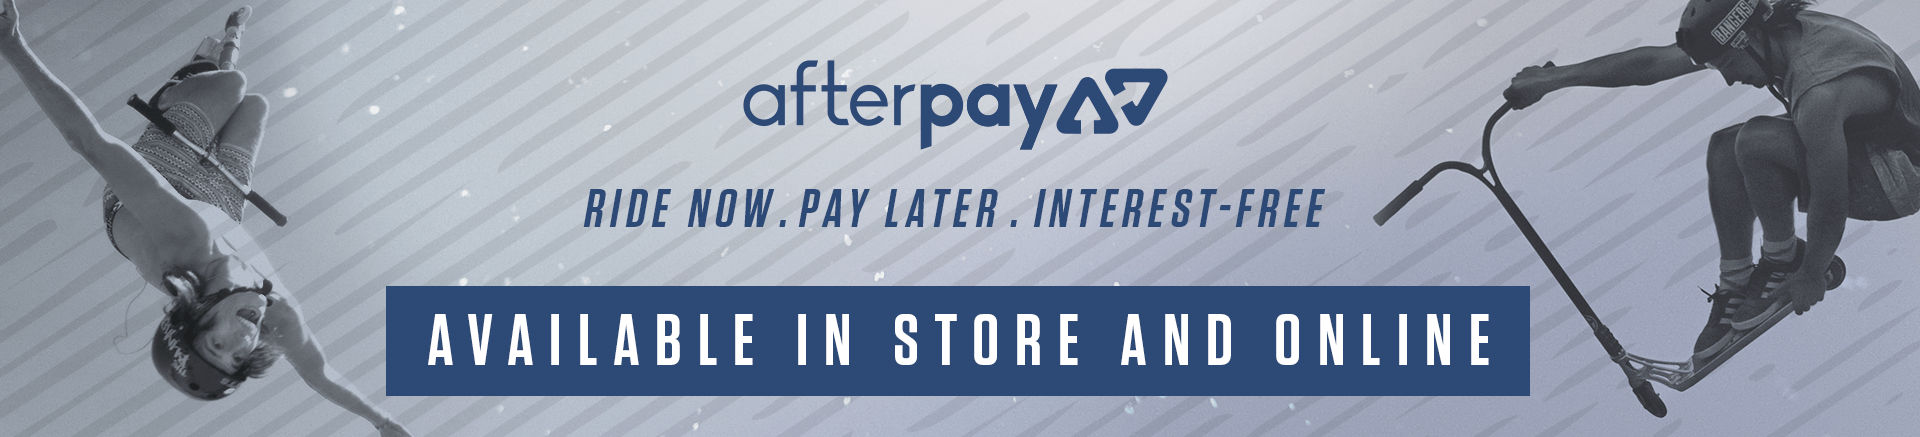 Afterpay available instore and online at Scooter Hut